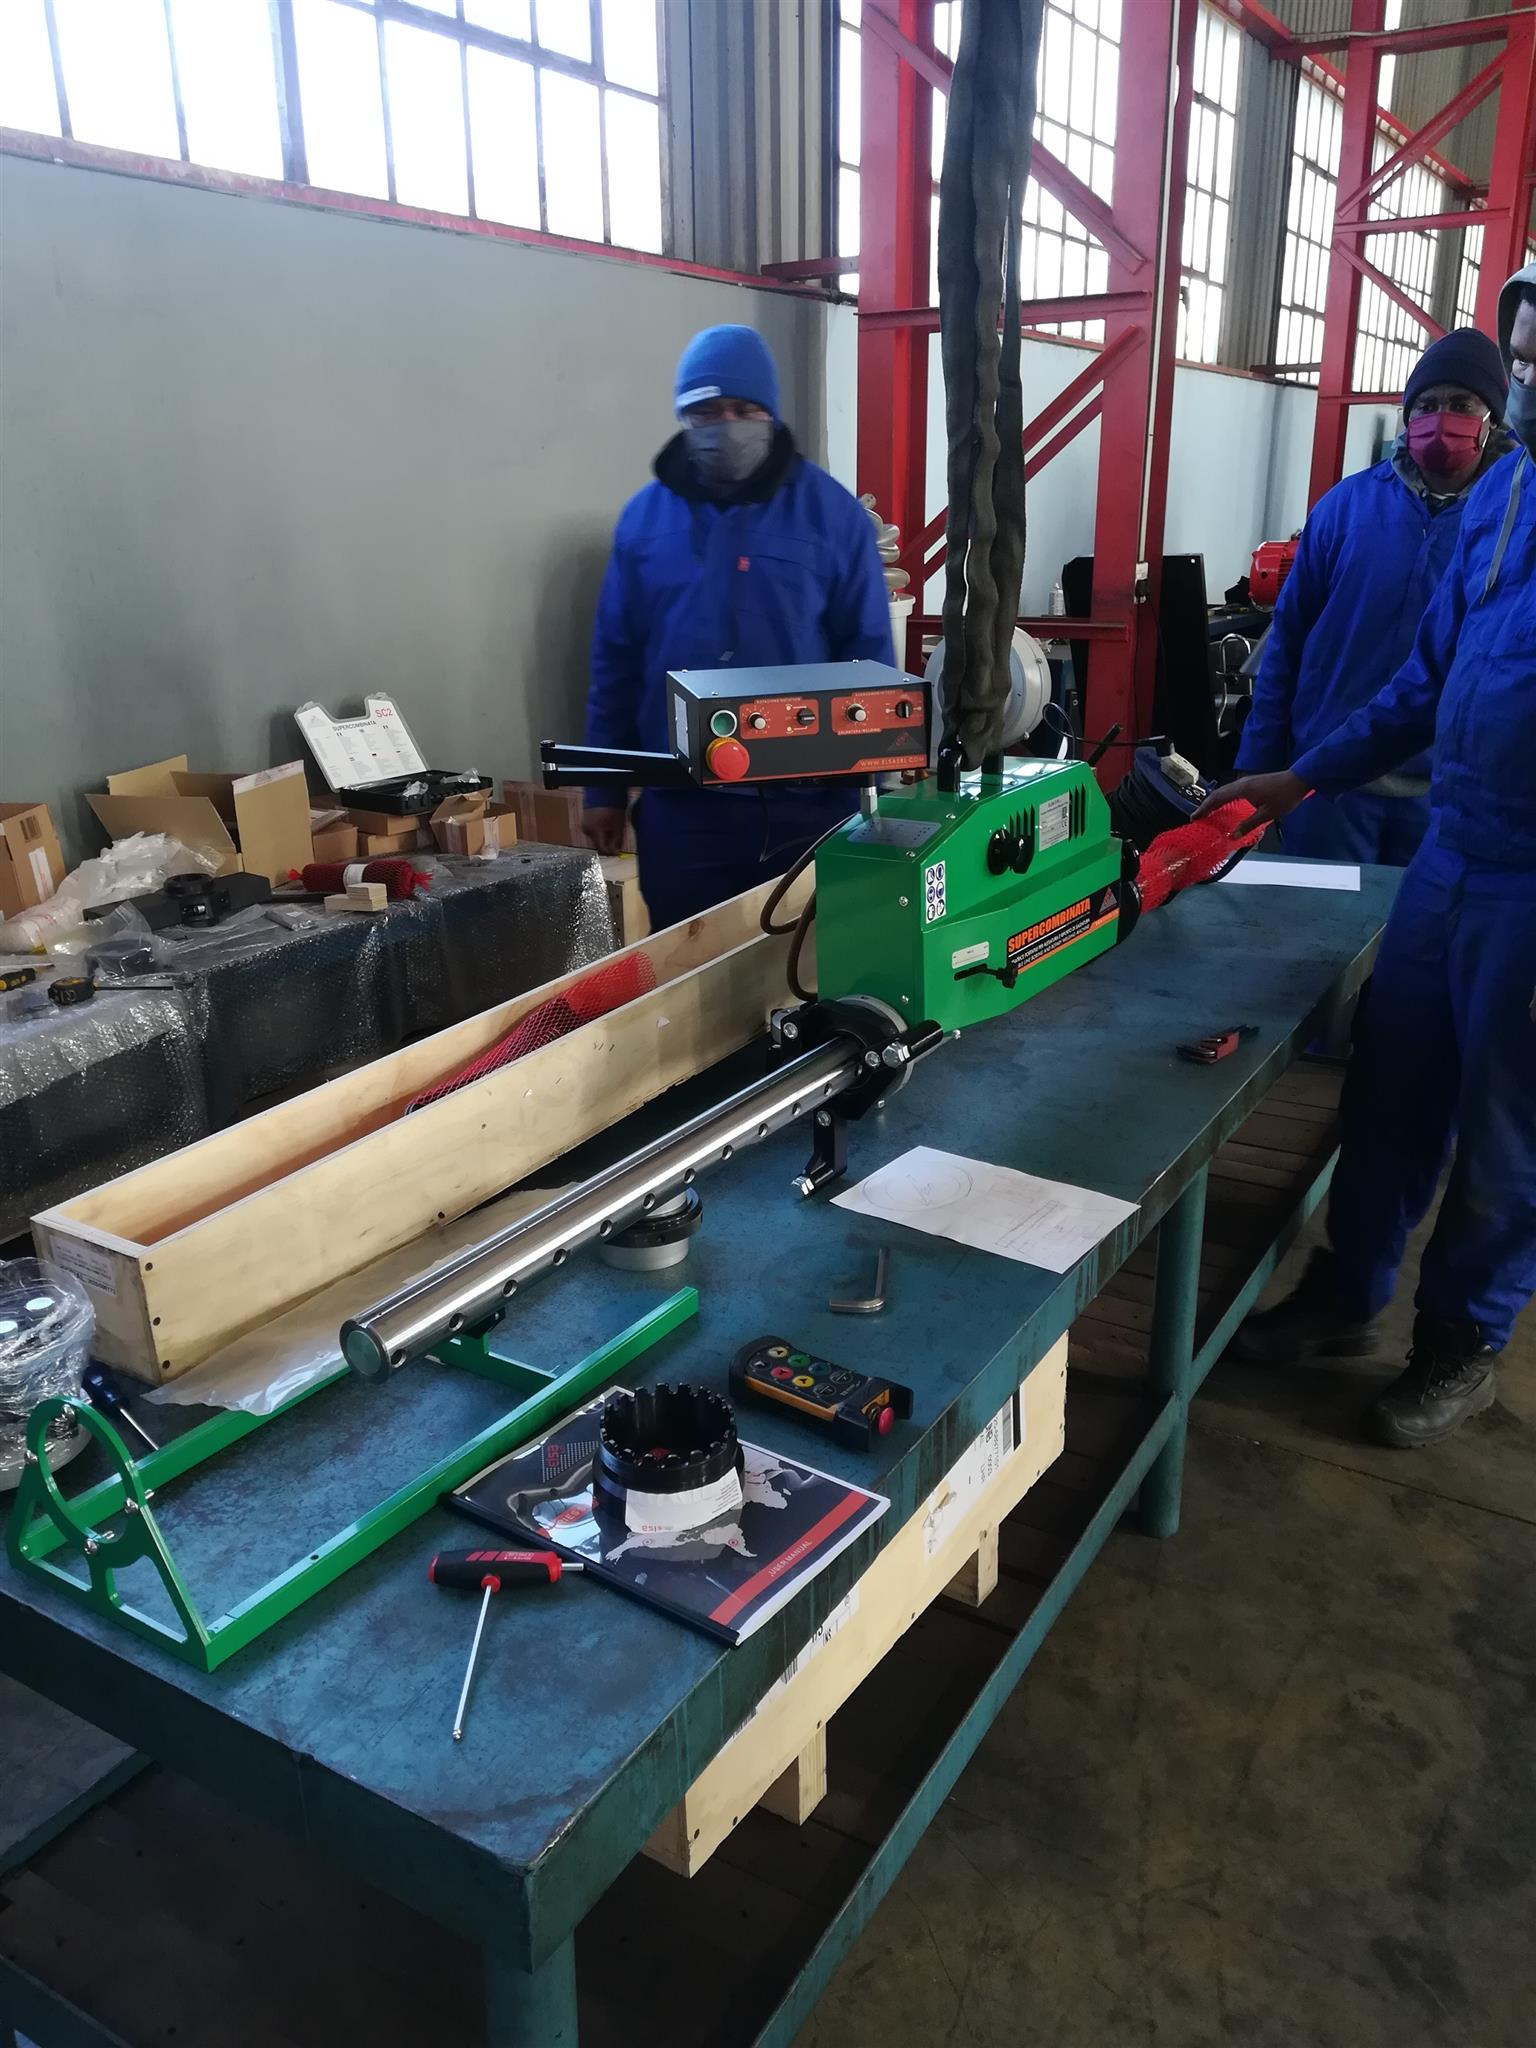 Portable line boring and rotary welding machine for sale